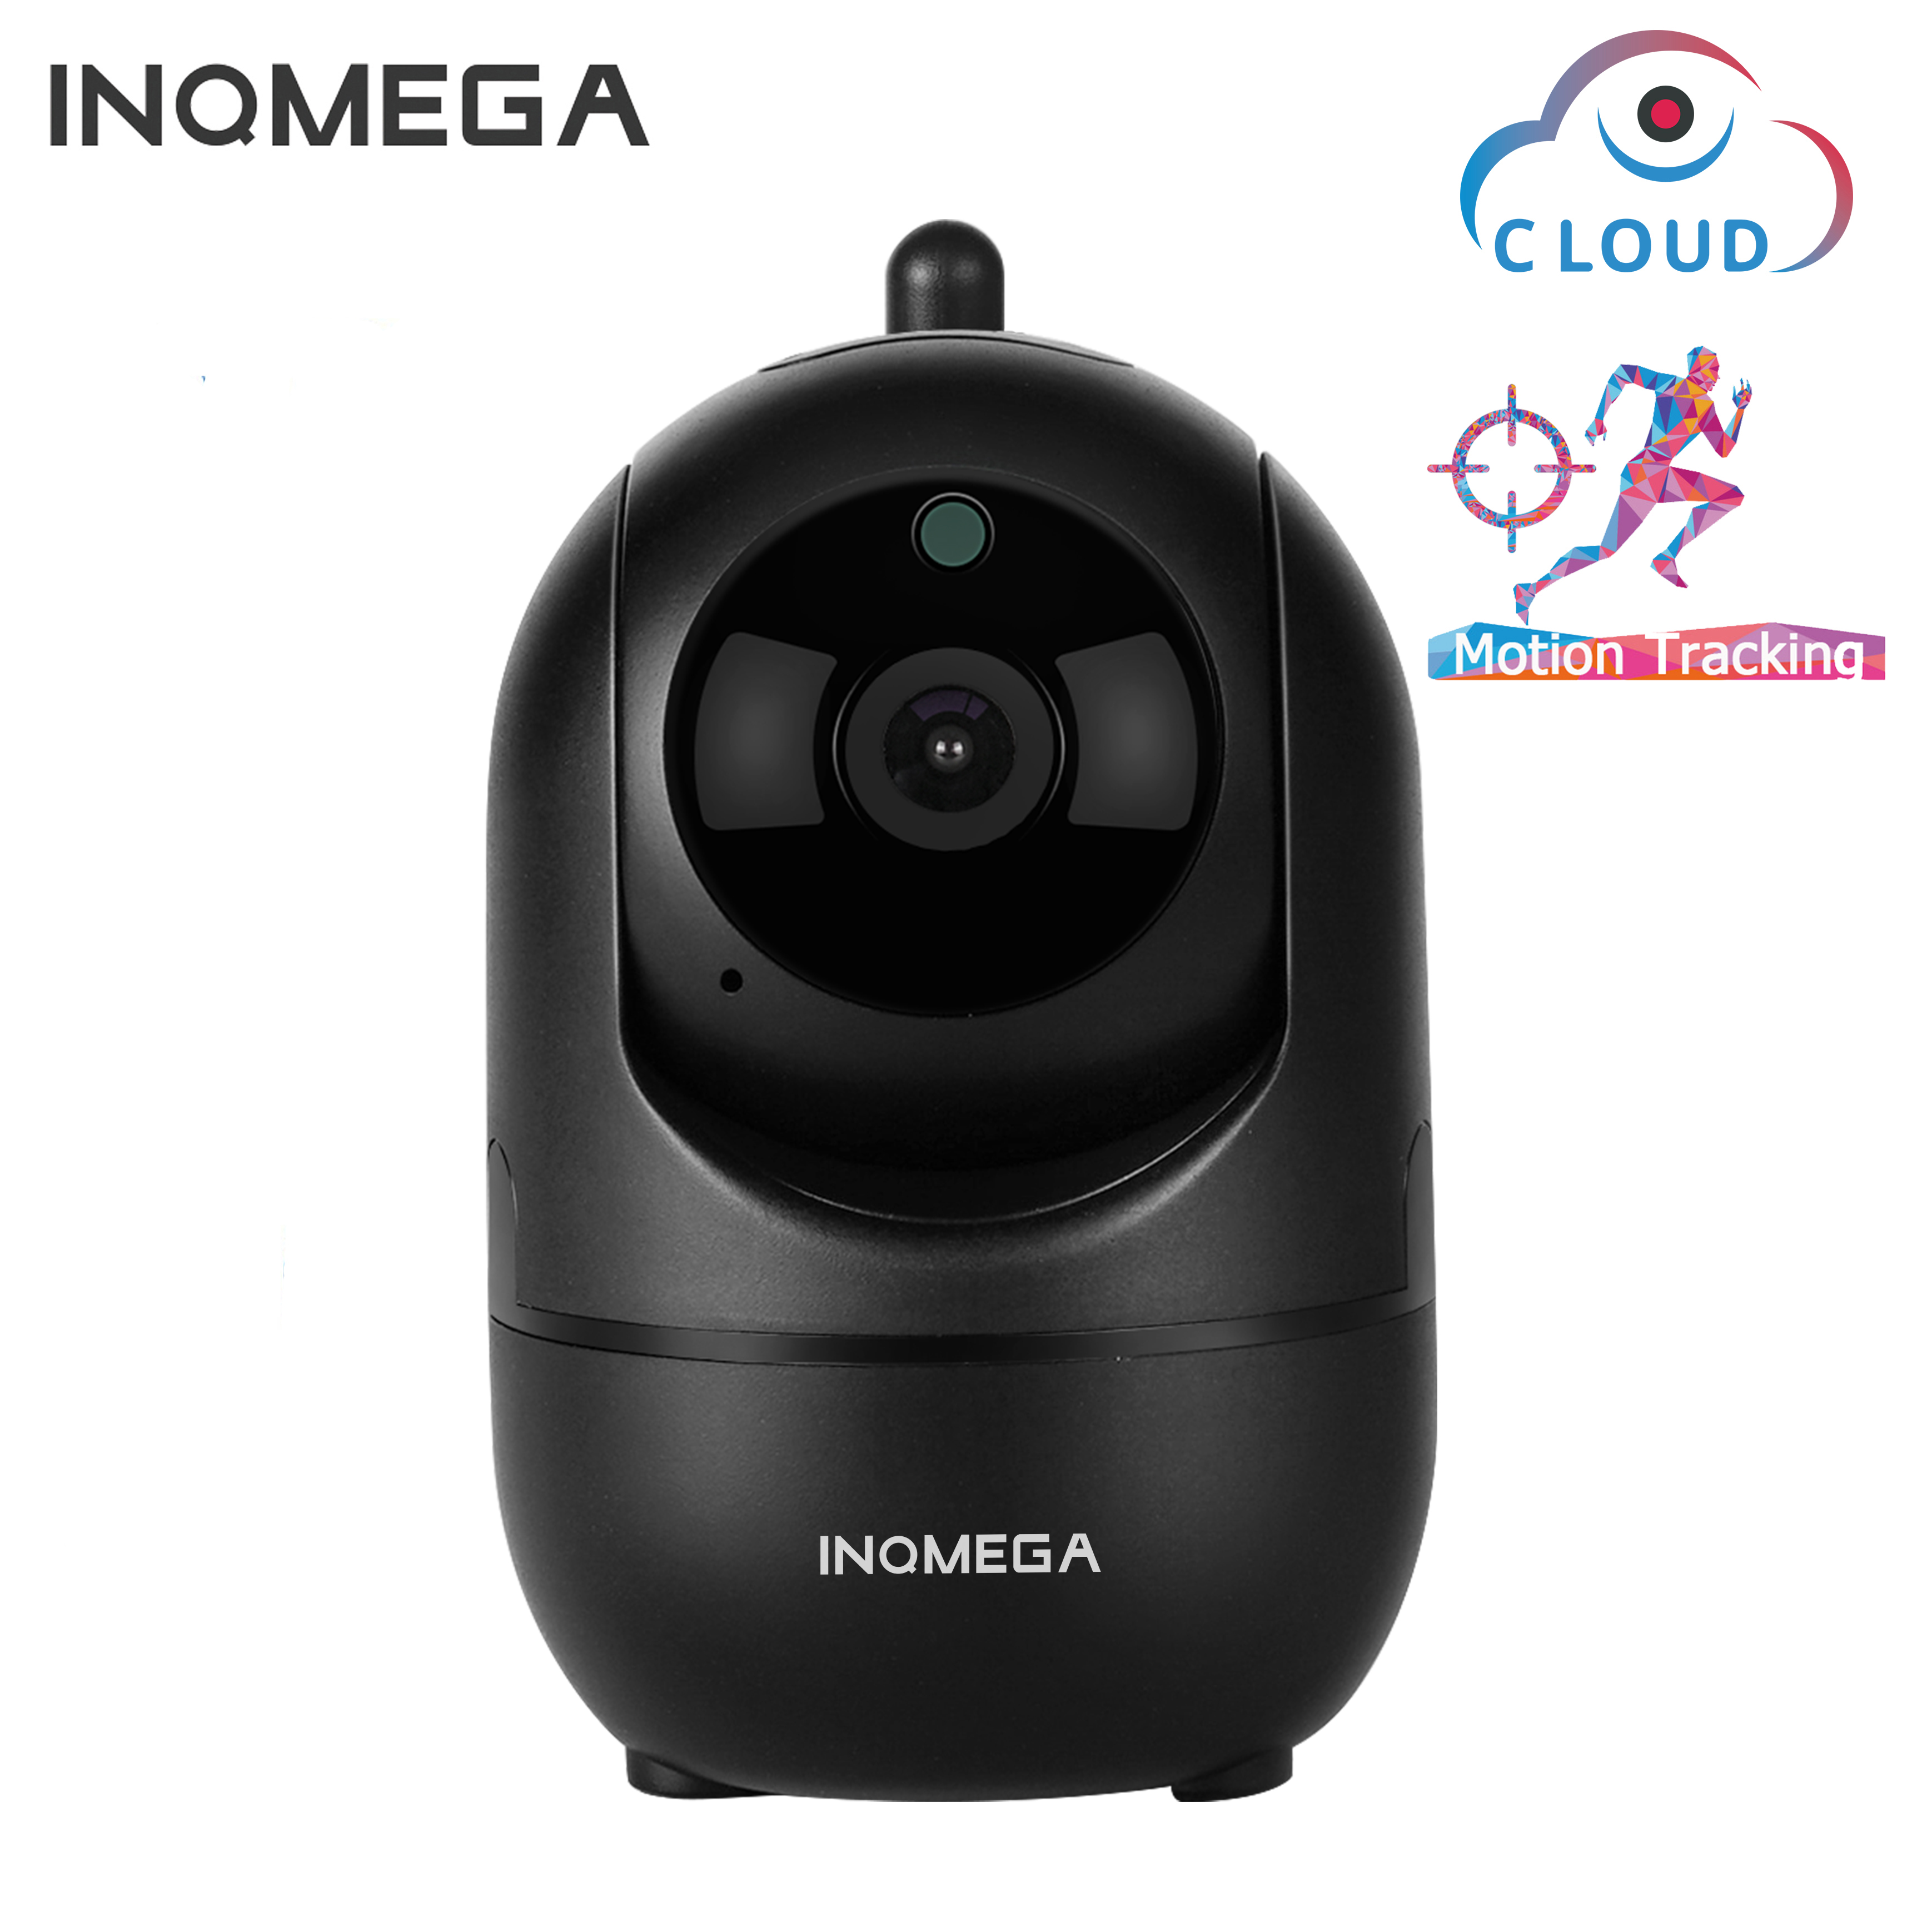 INQMEGA HD 1080P Cloud Wireless IP Camera Intelligent Auto Tracking Of Human Home Security Surveillance CCTV Network Wifi Camera image